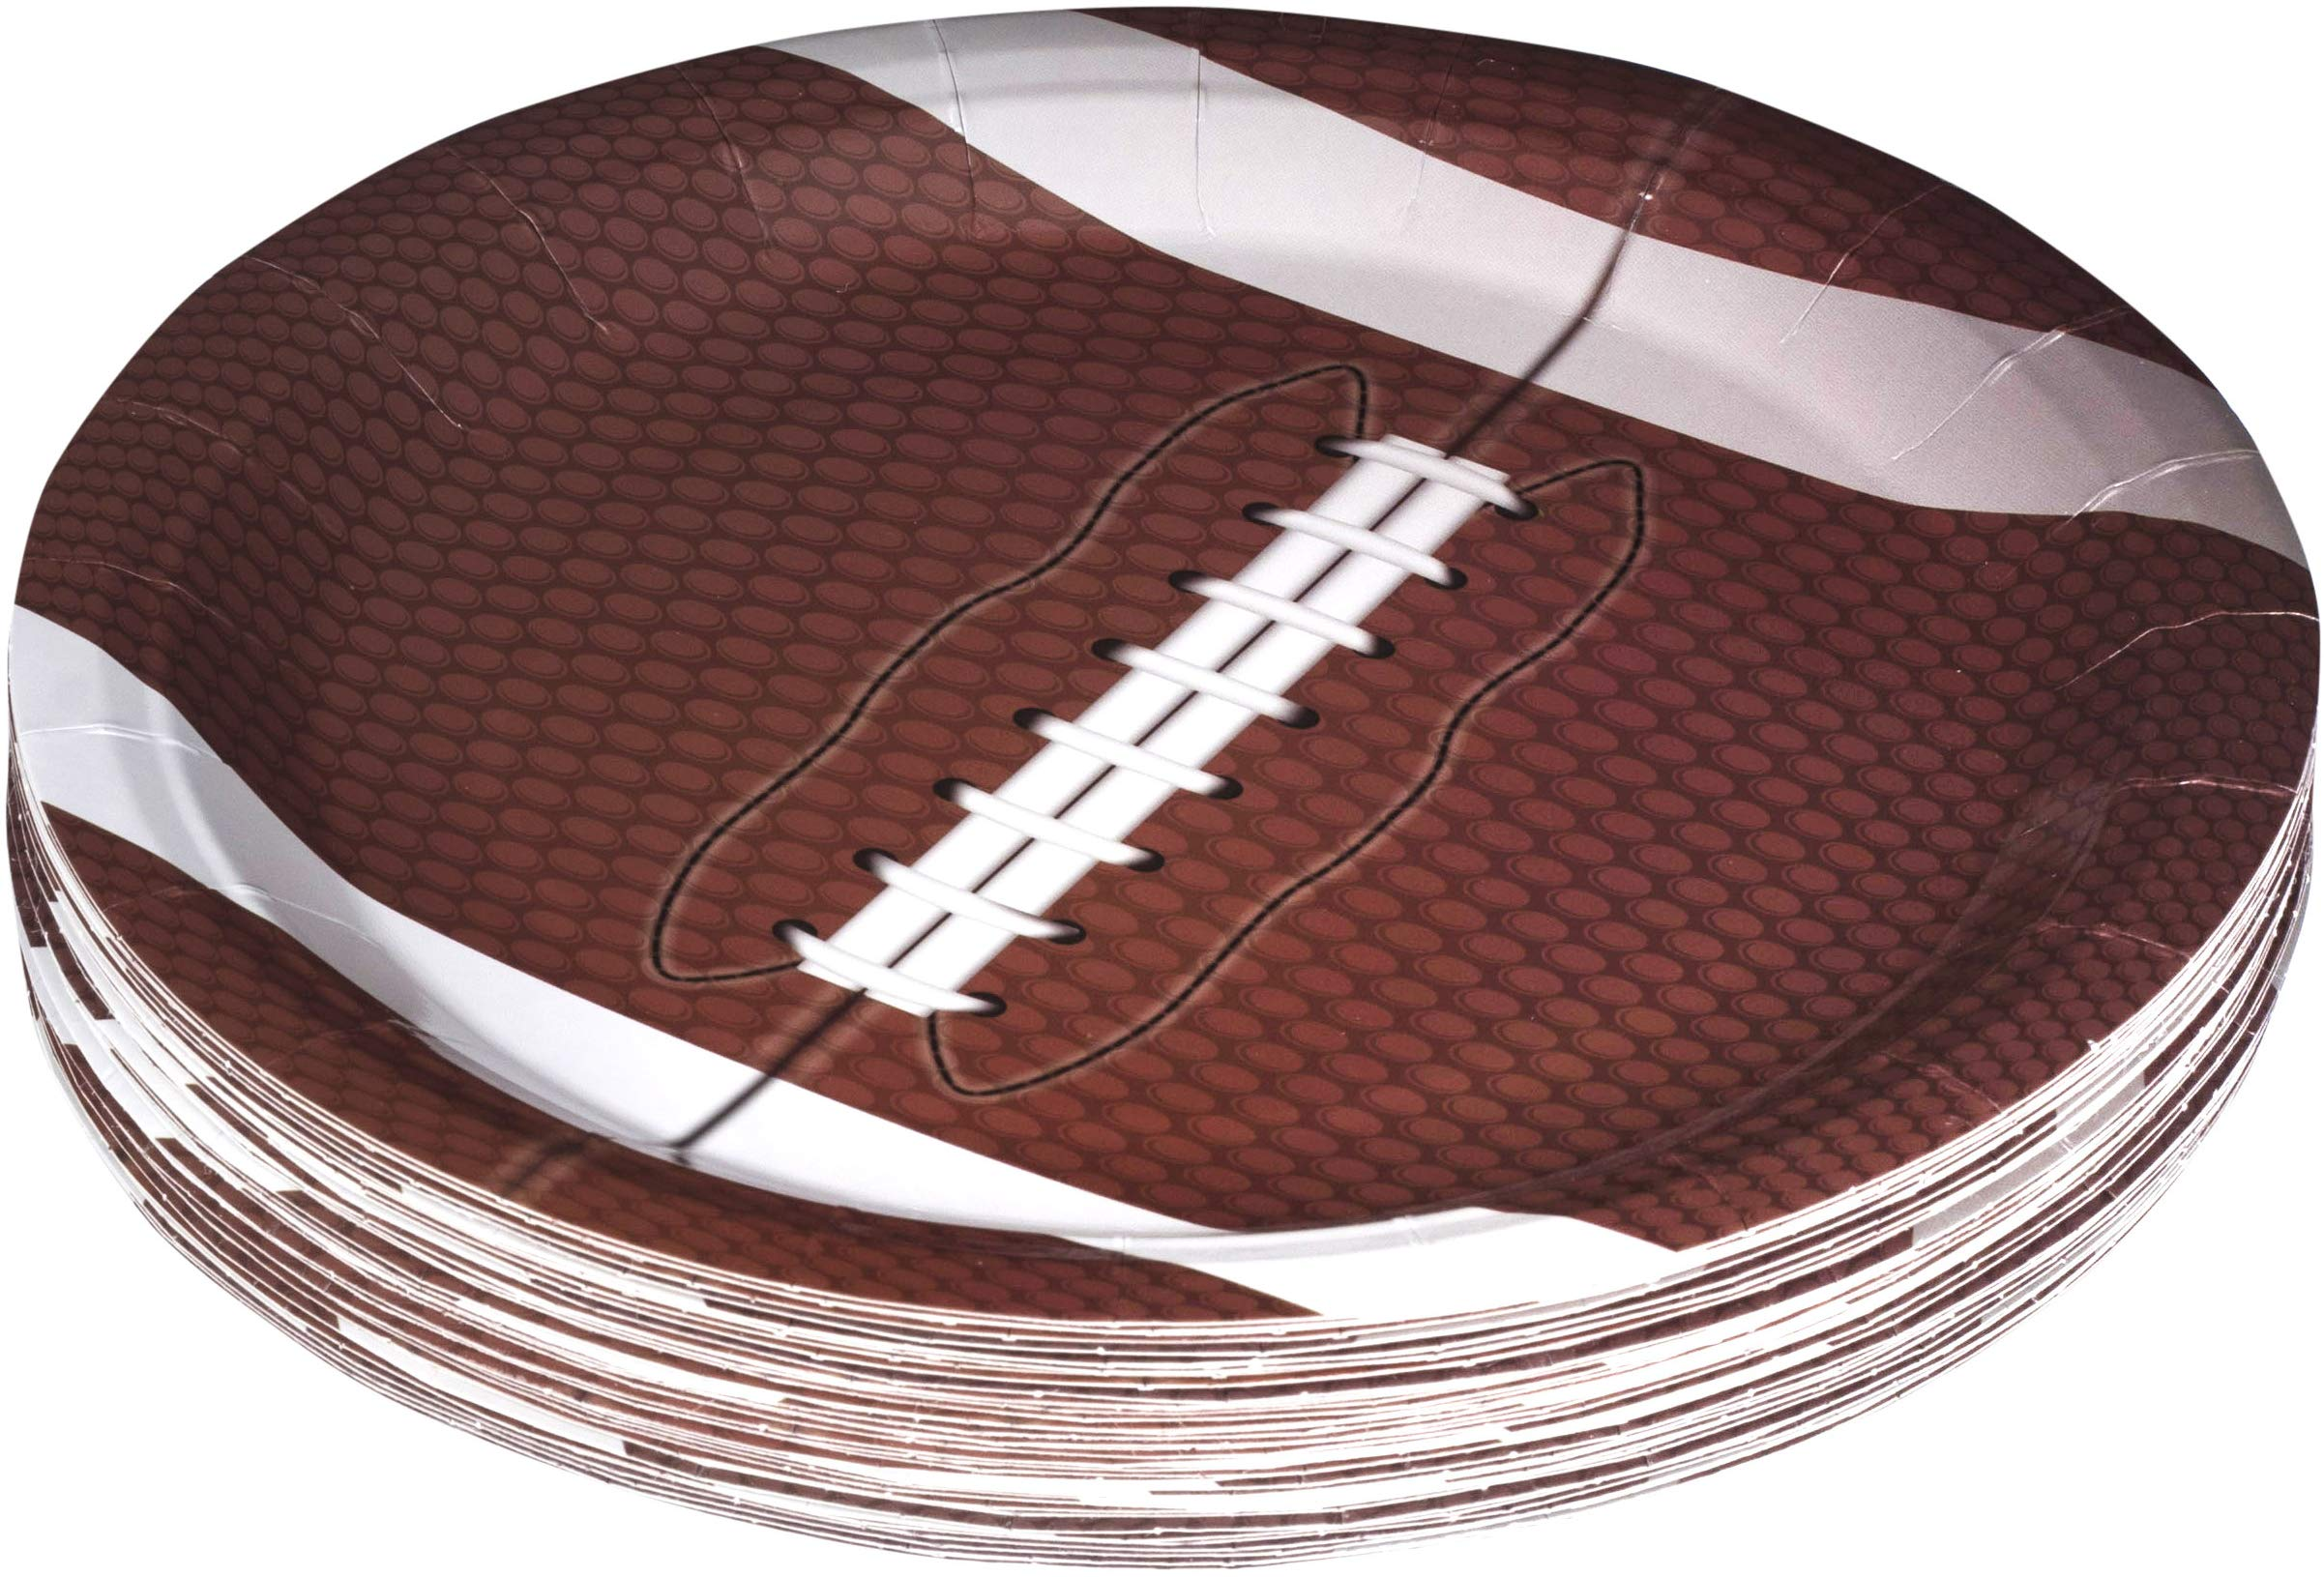 Football Themed 9'' Disposable Round Paper Plates -Superbowl Party Supplies Ideal for Tailgate Parties,Family Dinner and Sports Event (50 Pack) by Hammont